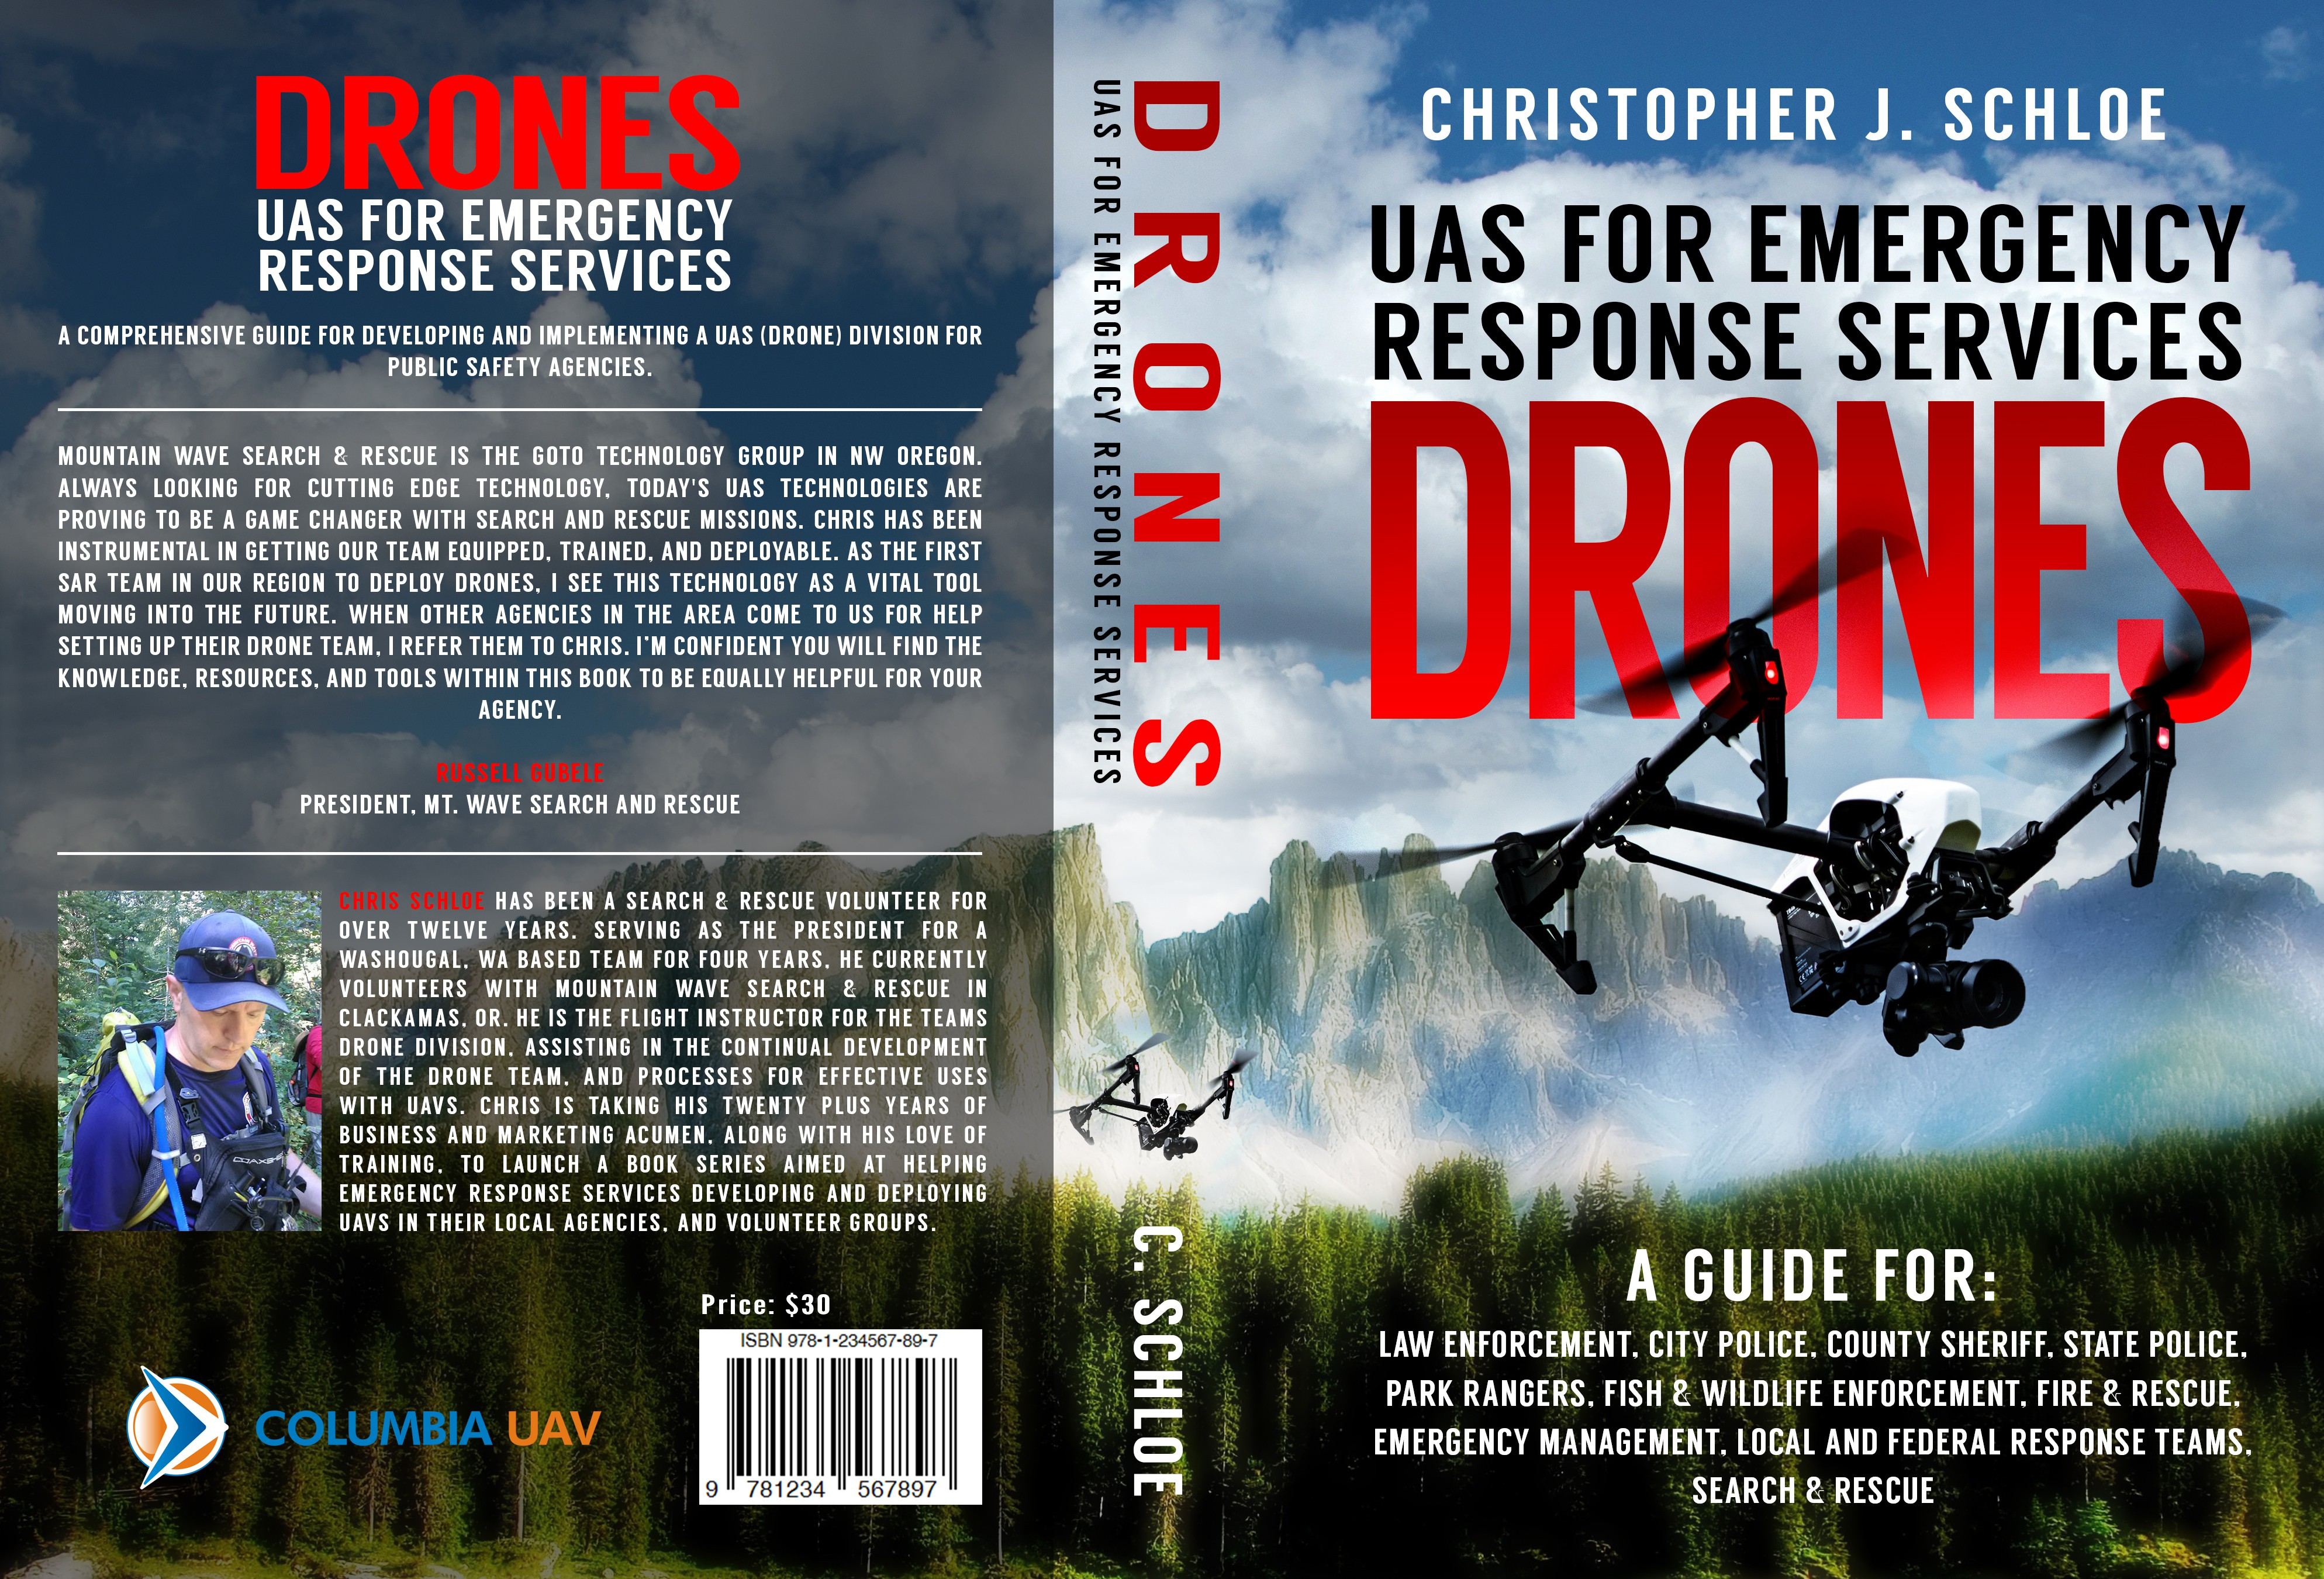 Drones - Emergency Response Services